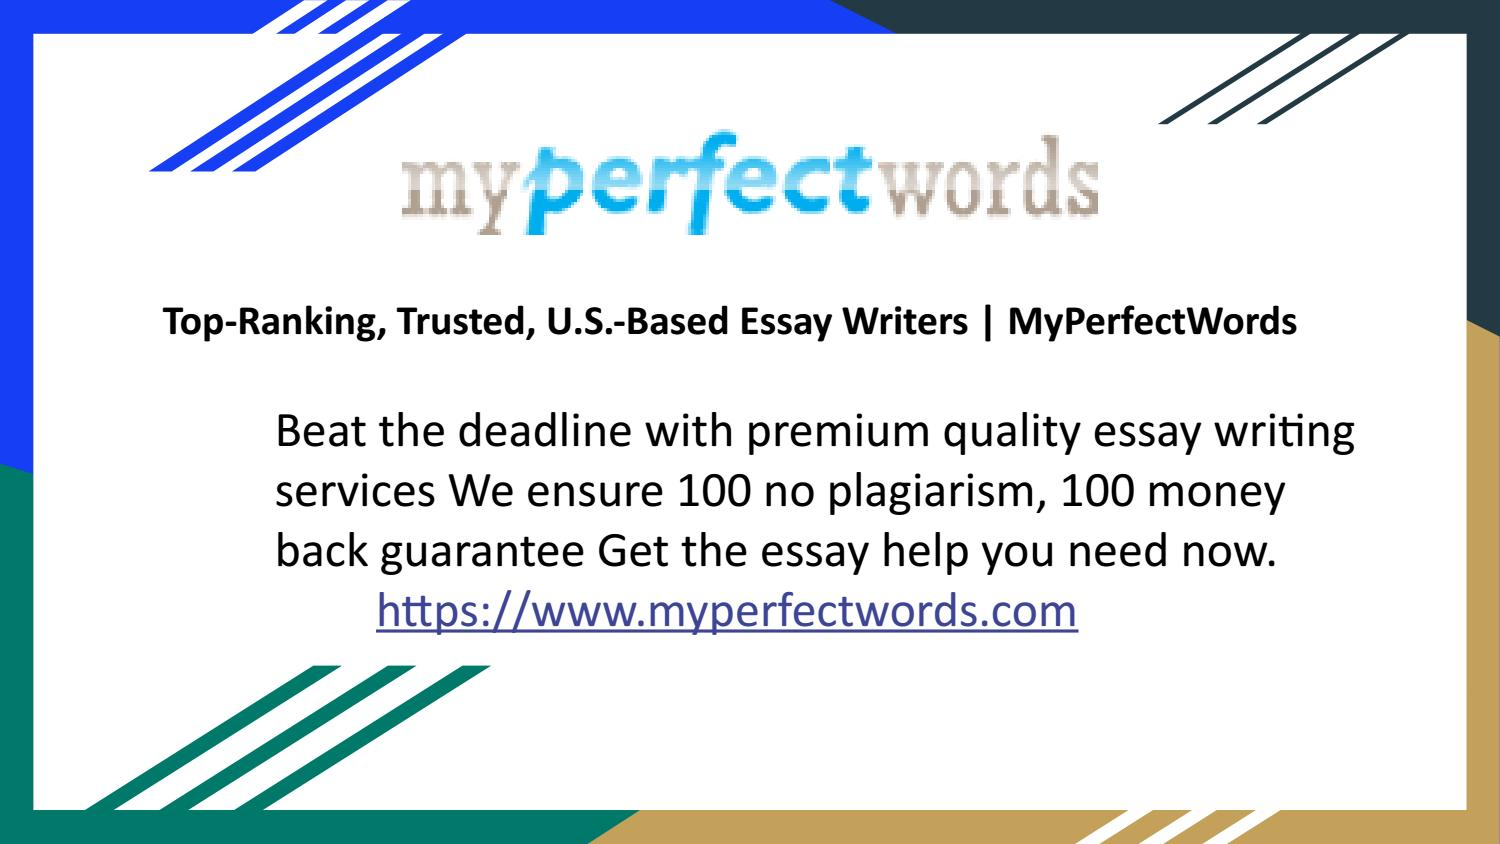 Top-Ranking, Trusted, U.S.-Based Essay Writers | MyPerfectWords